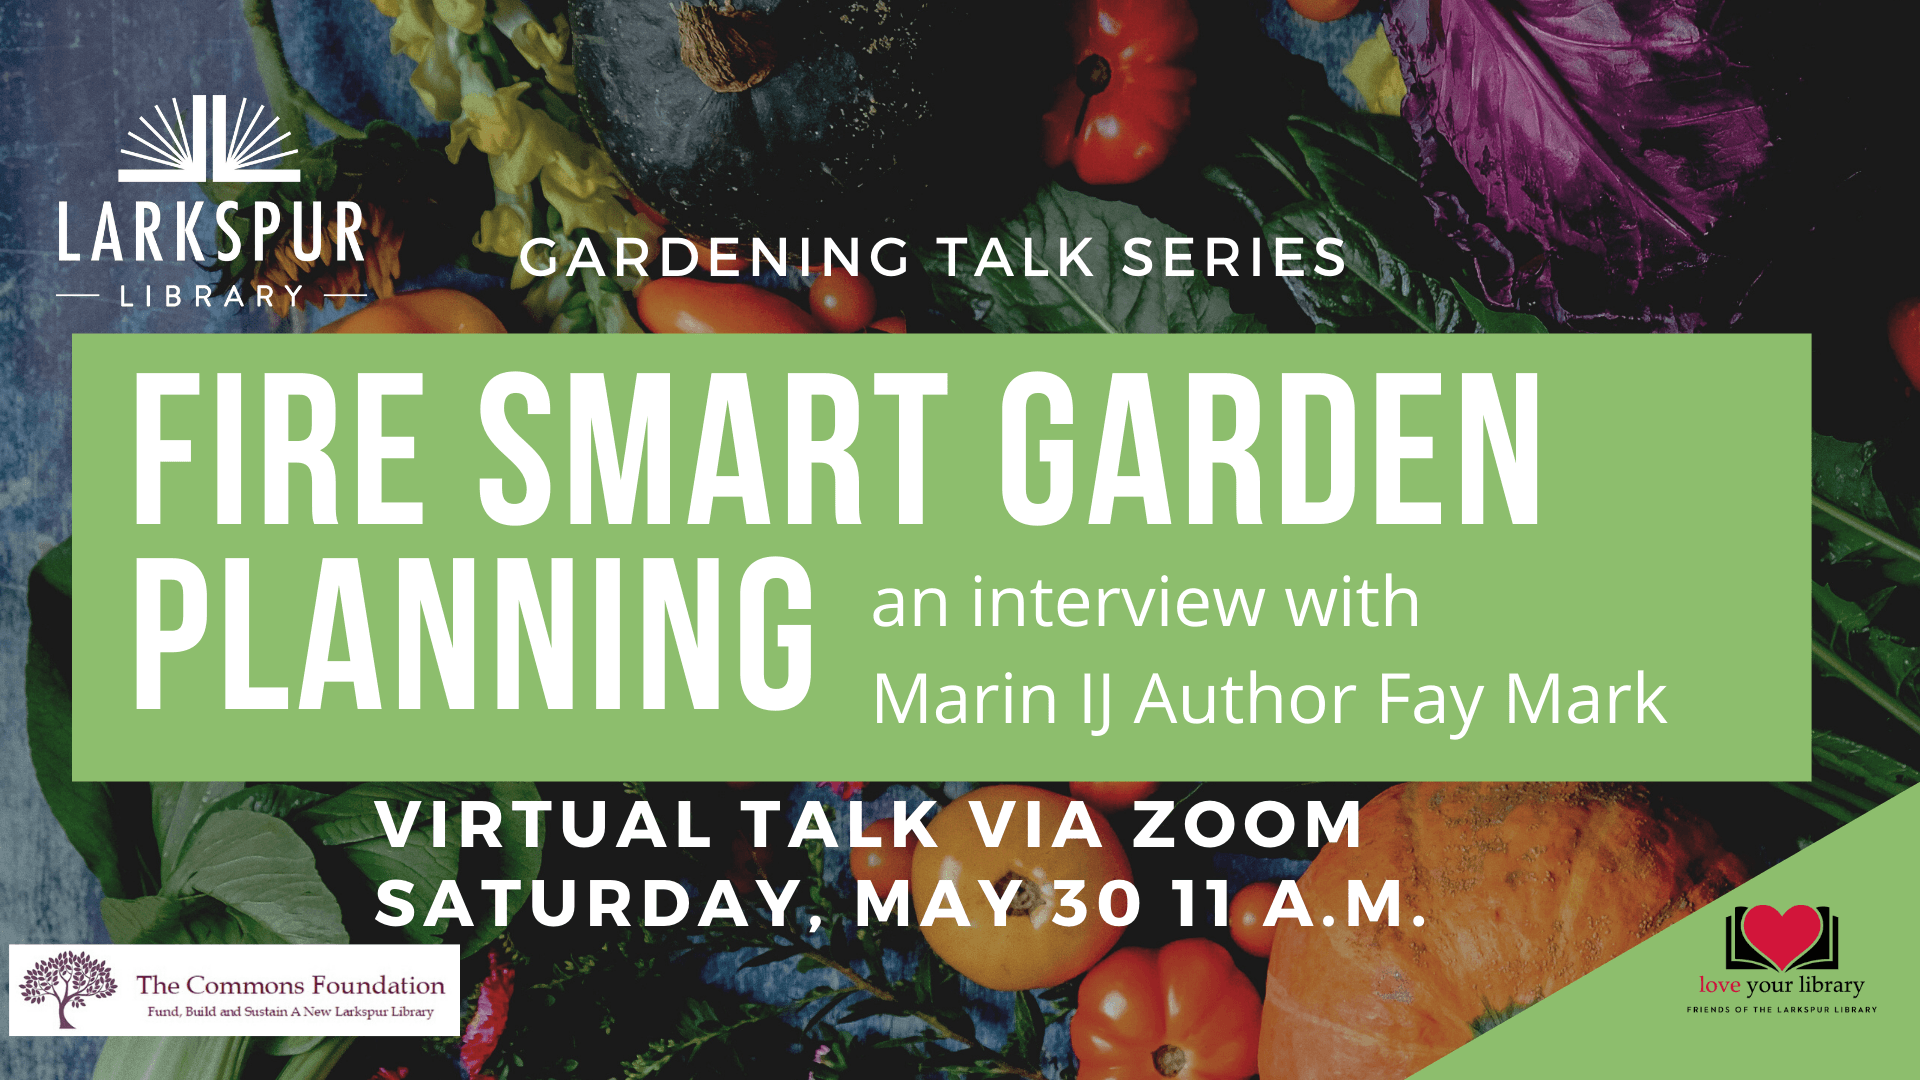 Fire Smart Garden Planning Interview with Marin IJ Author Fay Mark